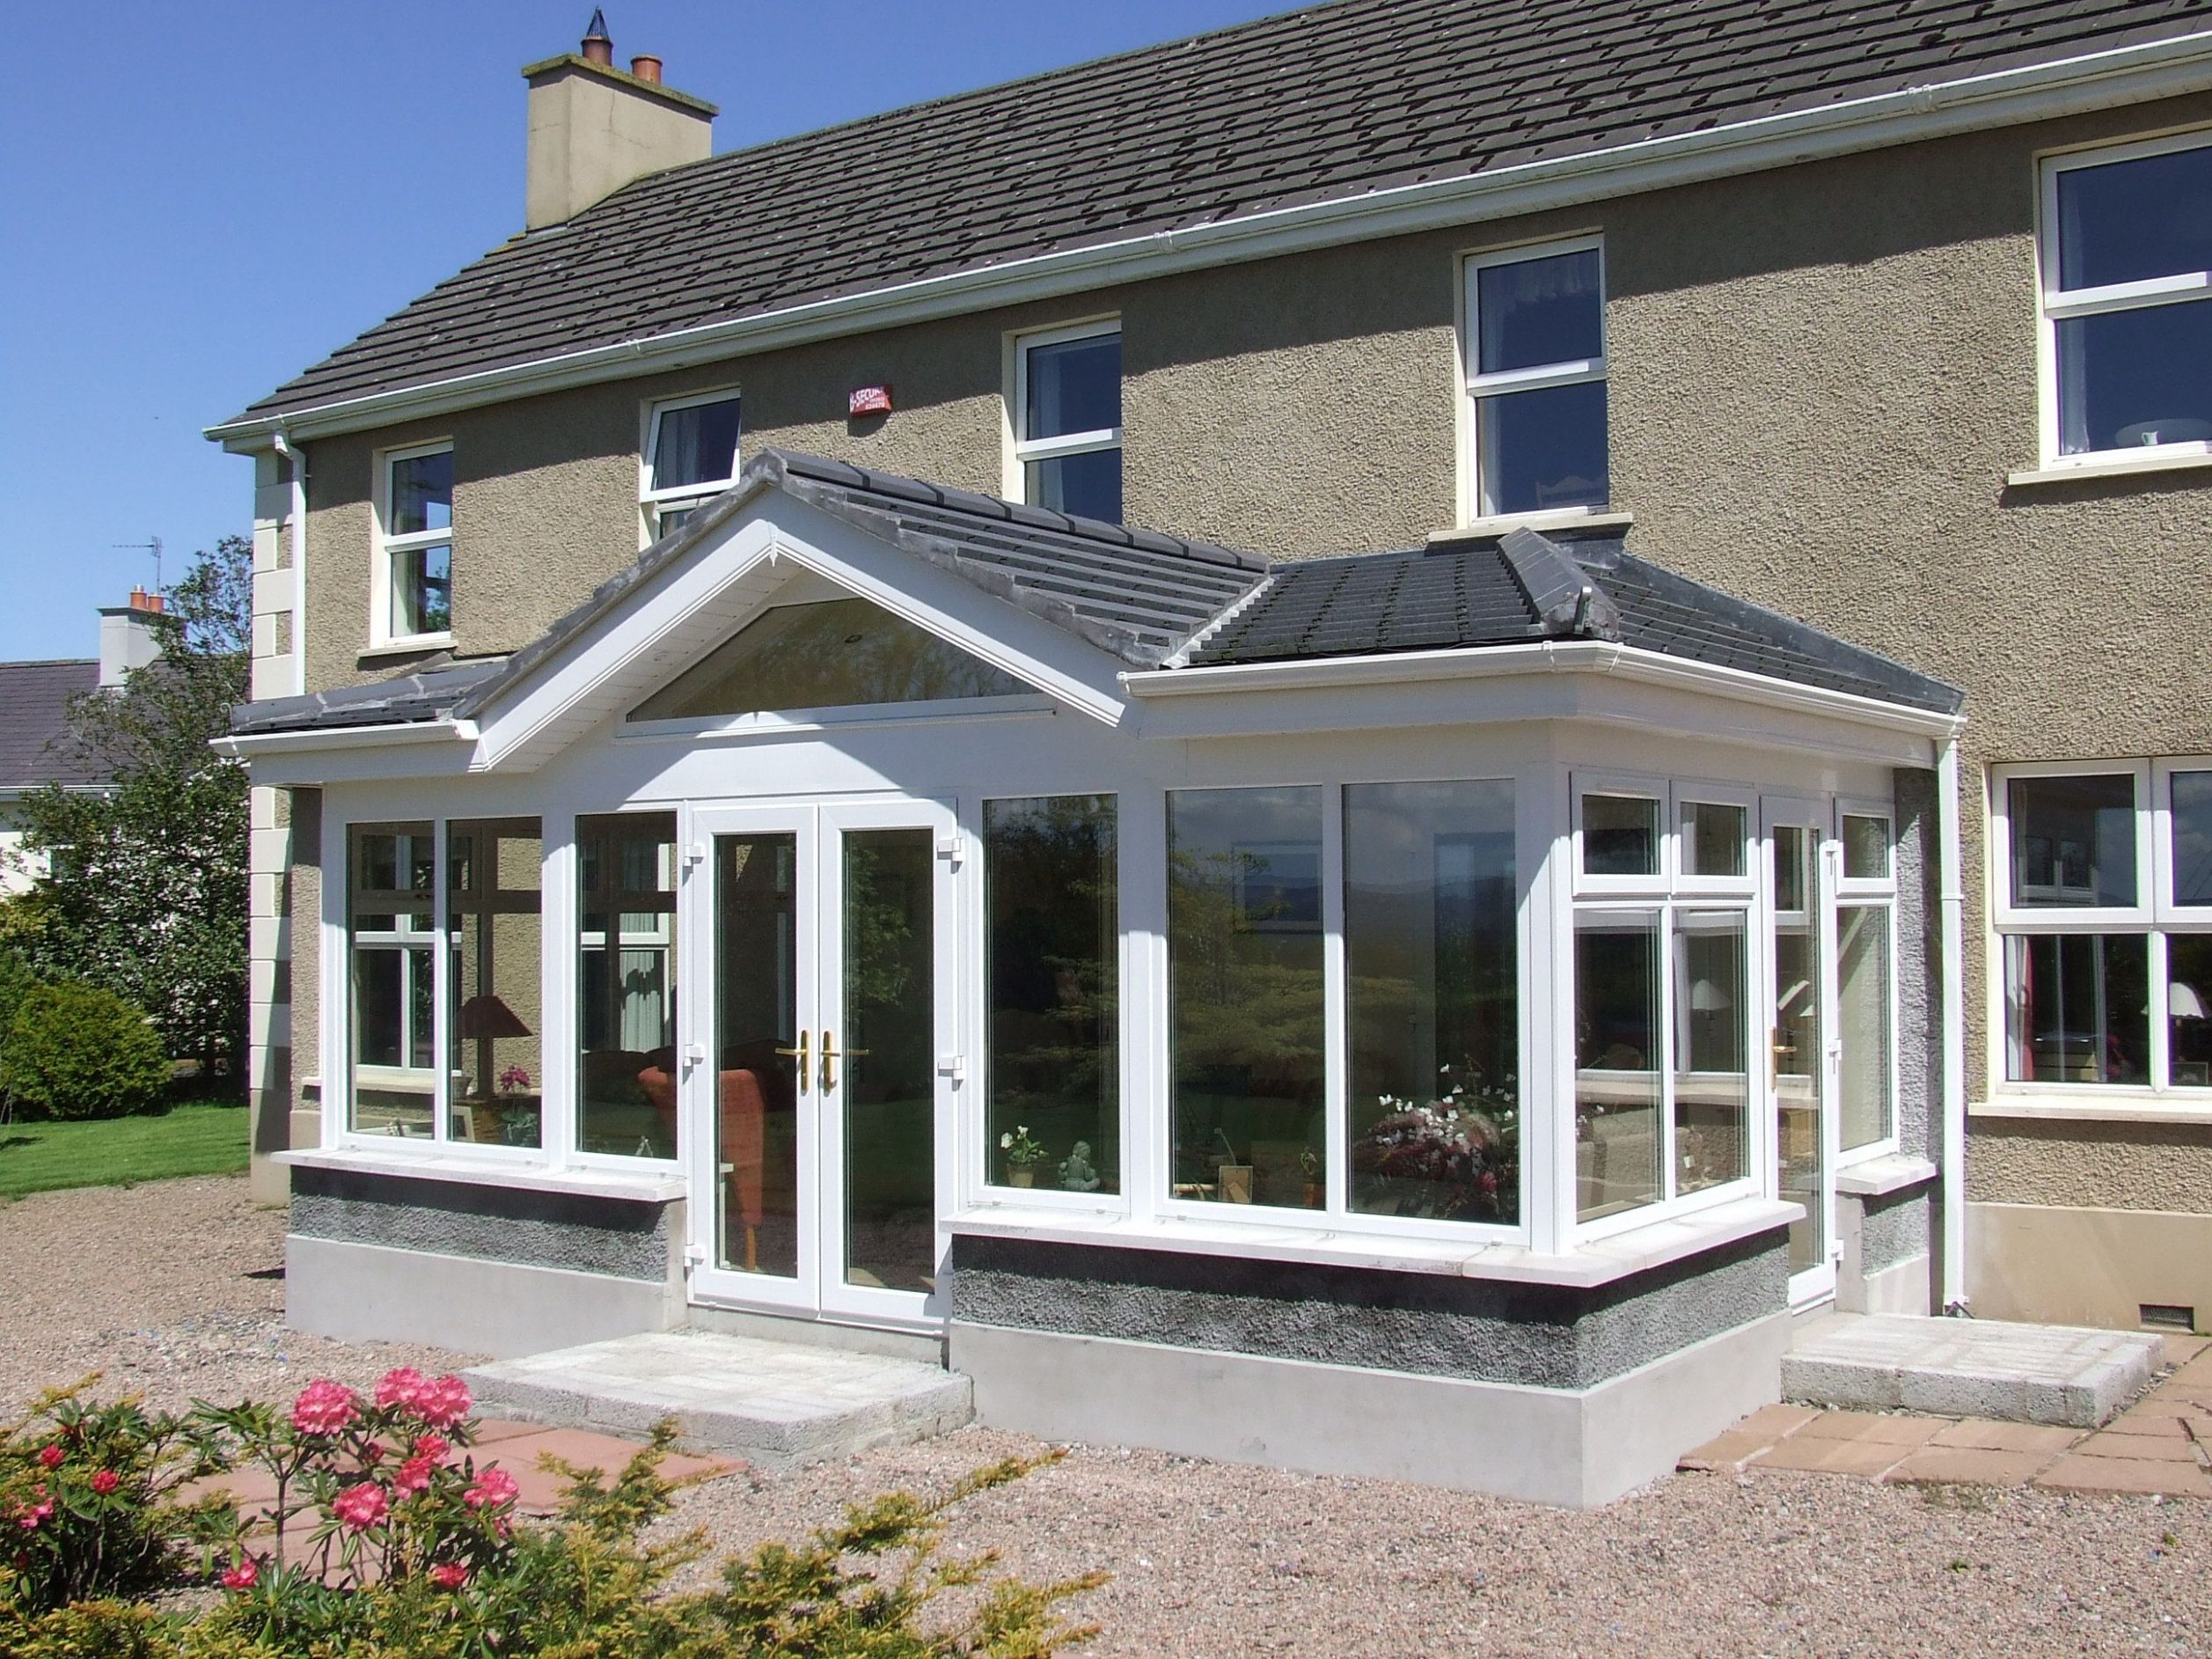 sunrooms+images | DSCF11 11x11 Sunrooms Northern Ireland (With ..